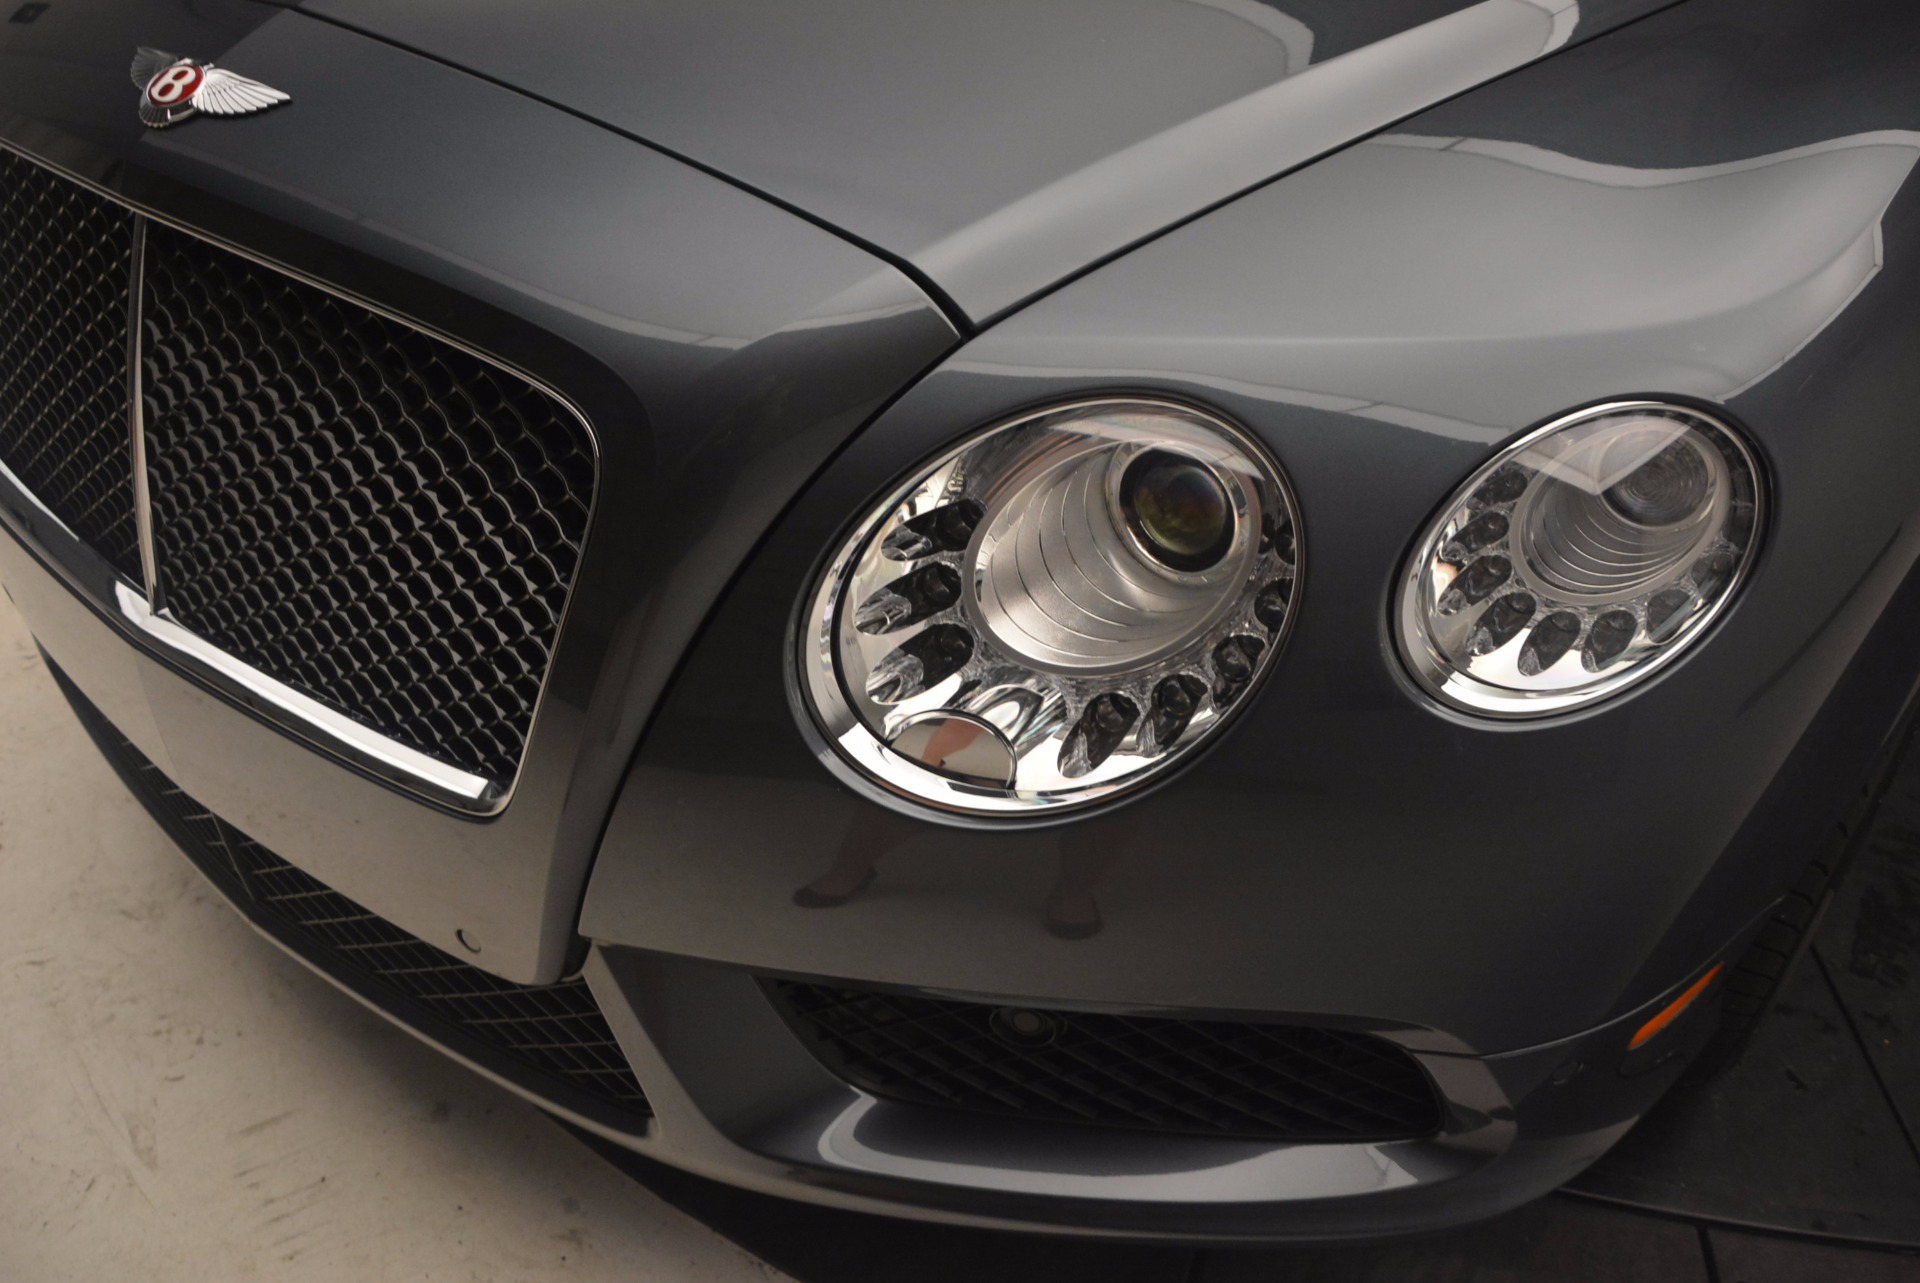 Used 2013 Bentley Continental GT V8 Le Mans Edition, 1 of 48 For Sale In Westport, CT 1288_p27